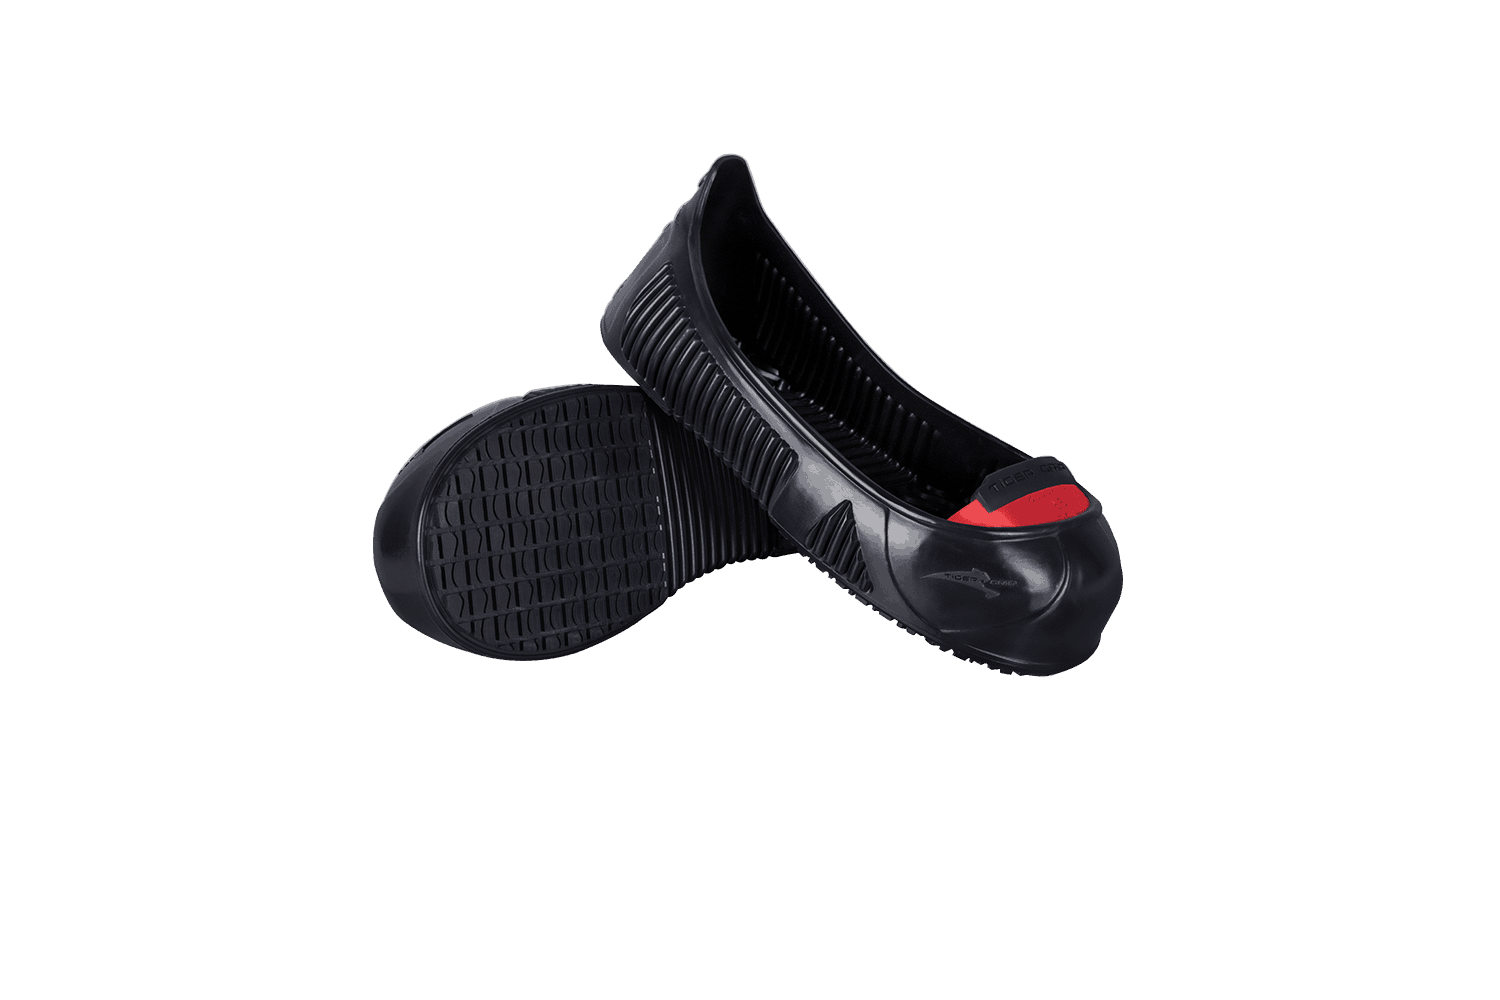 fdd007d25b2 Anti-slip Overshoes with Safety Toe Protection - Total Protect